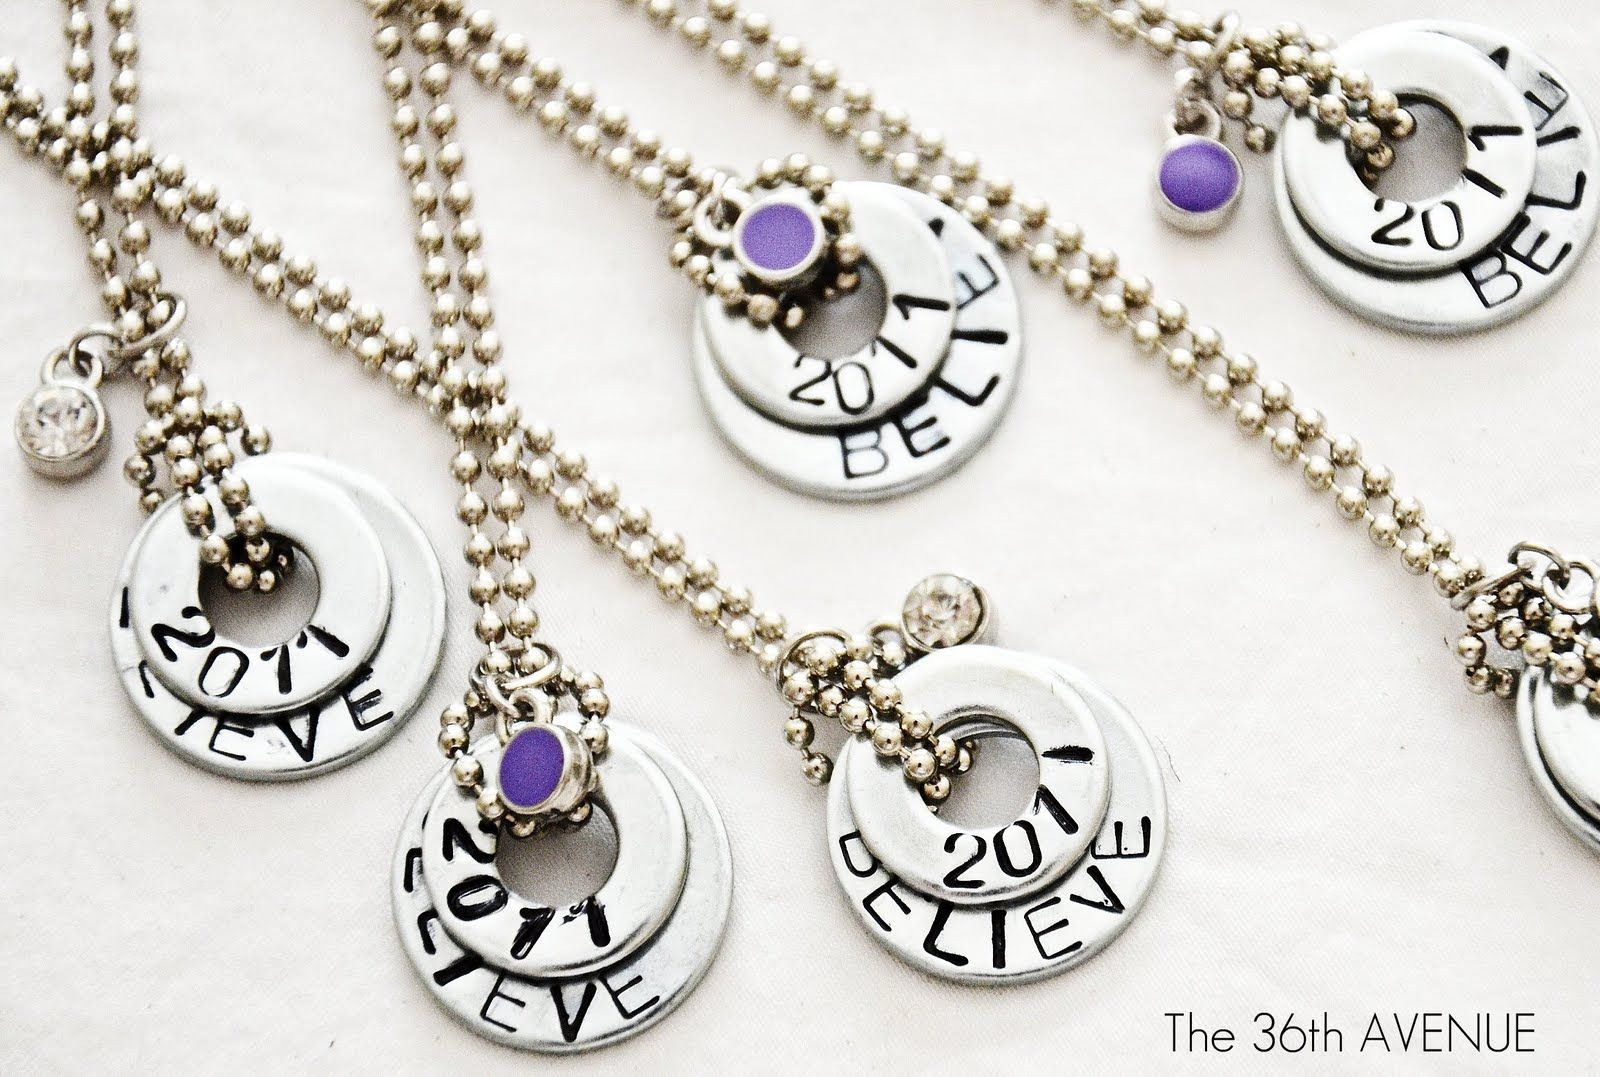 diy stamped washer necklaces - Regalos Manuales Originales